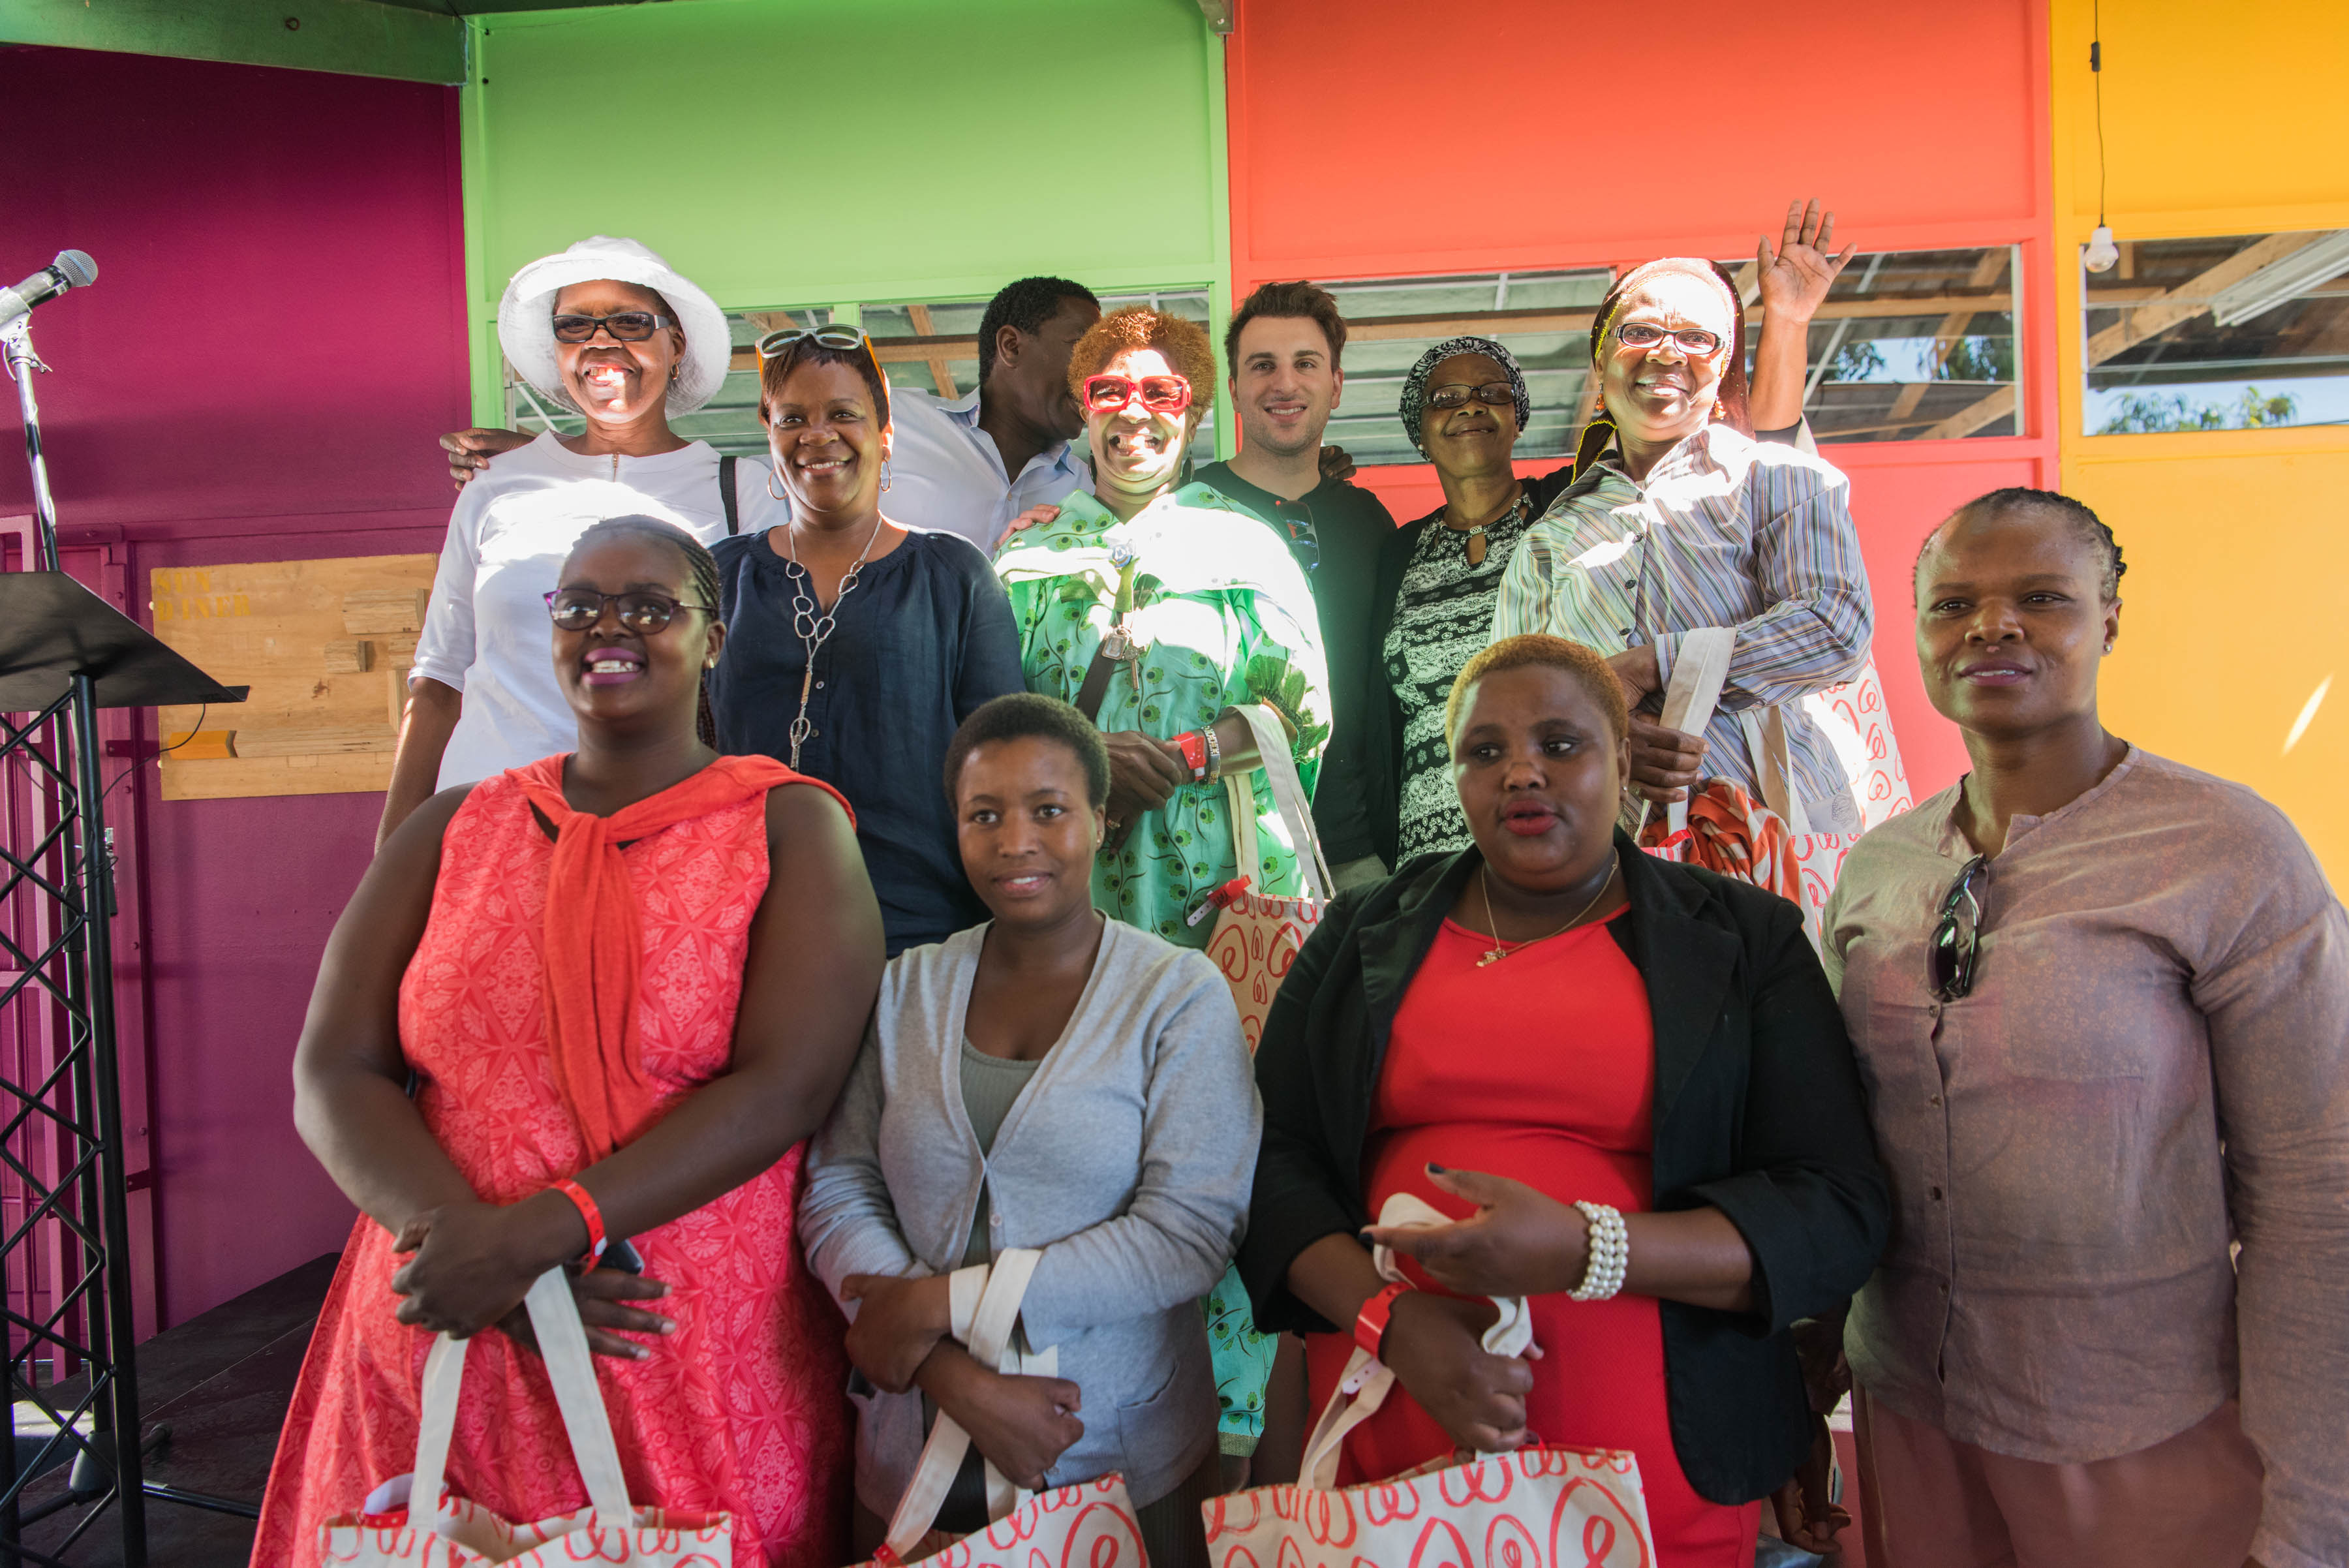 Empowering Women in Social Enterprise: Airbnb, iKhaya le Langa Partner to Help Entrepreneurs Thrive